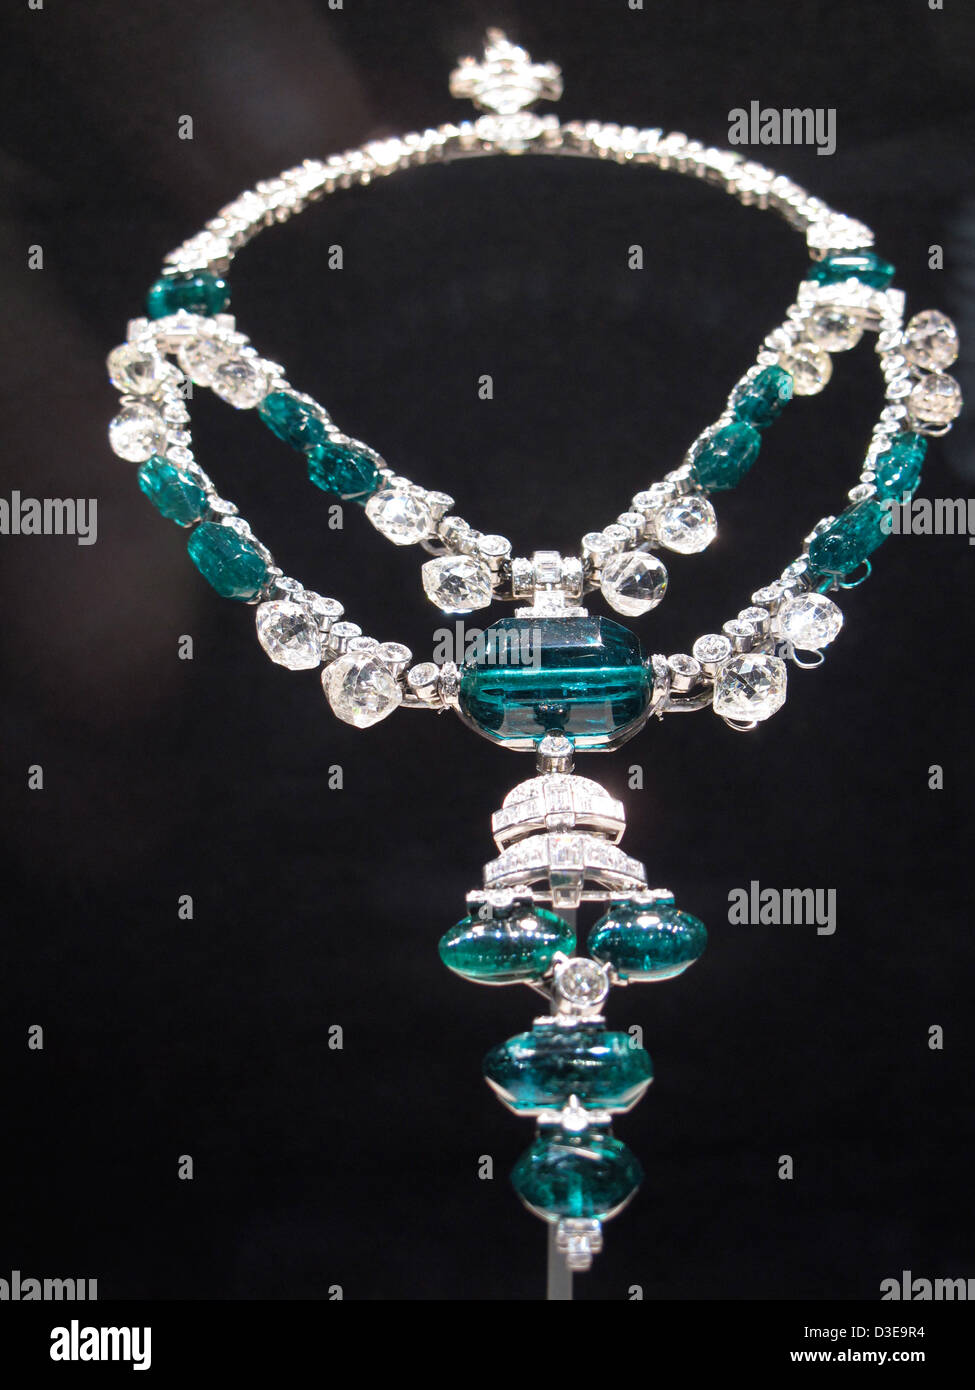 """The """"Spanish Inquisition Necklace"""" or Maharaja of Indore Emerald Necklace. - Stock Image"""